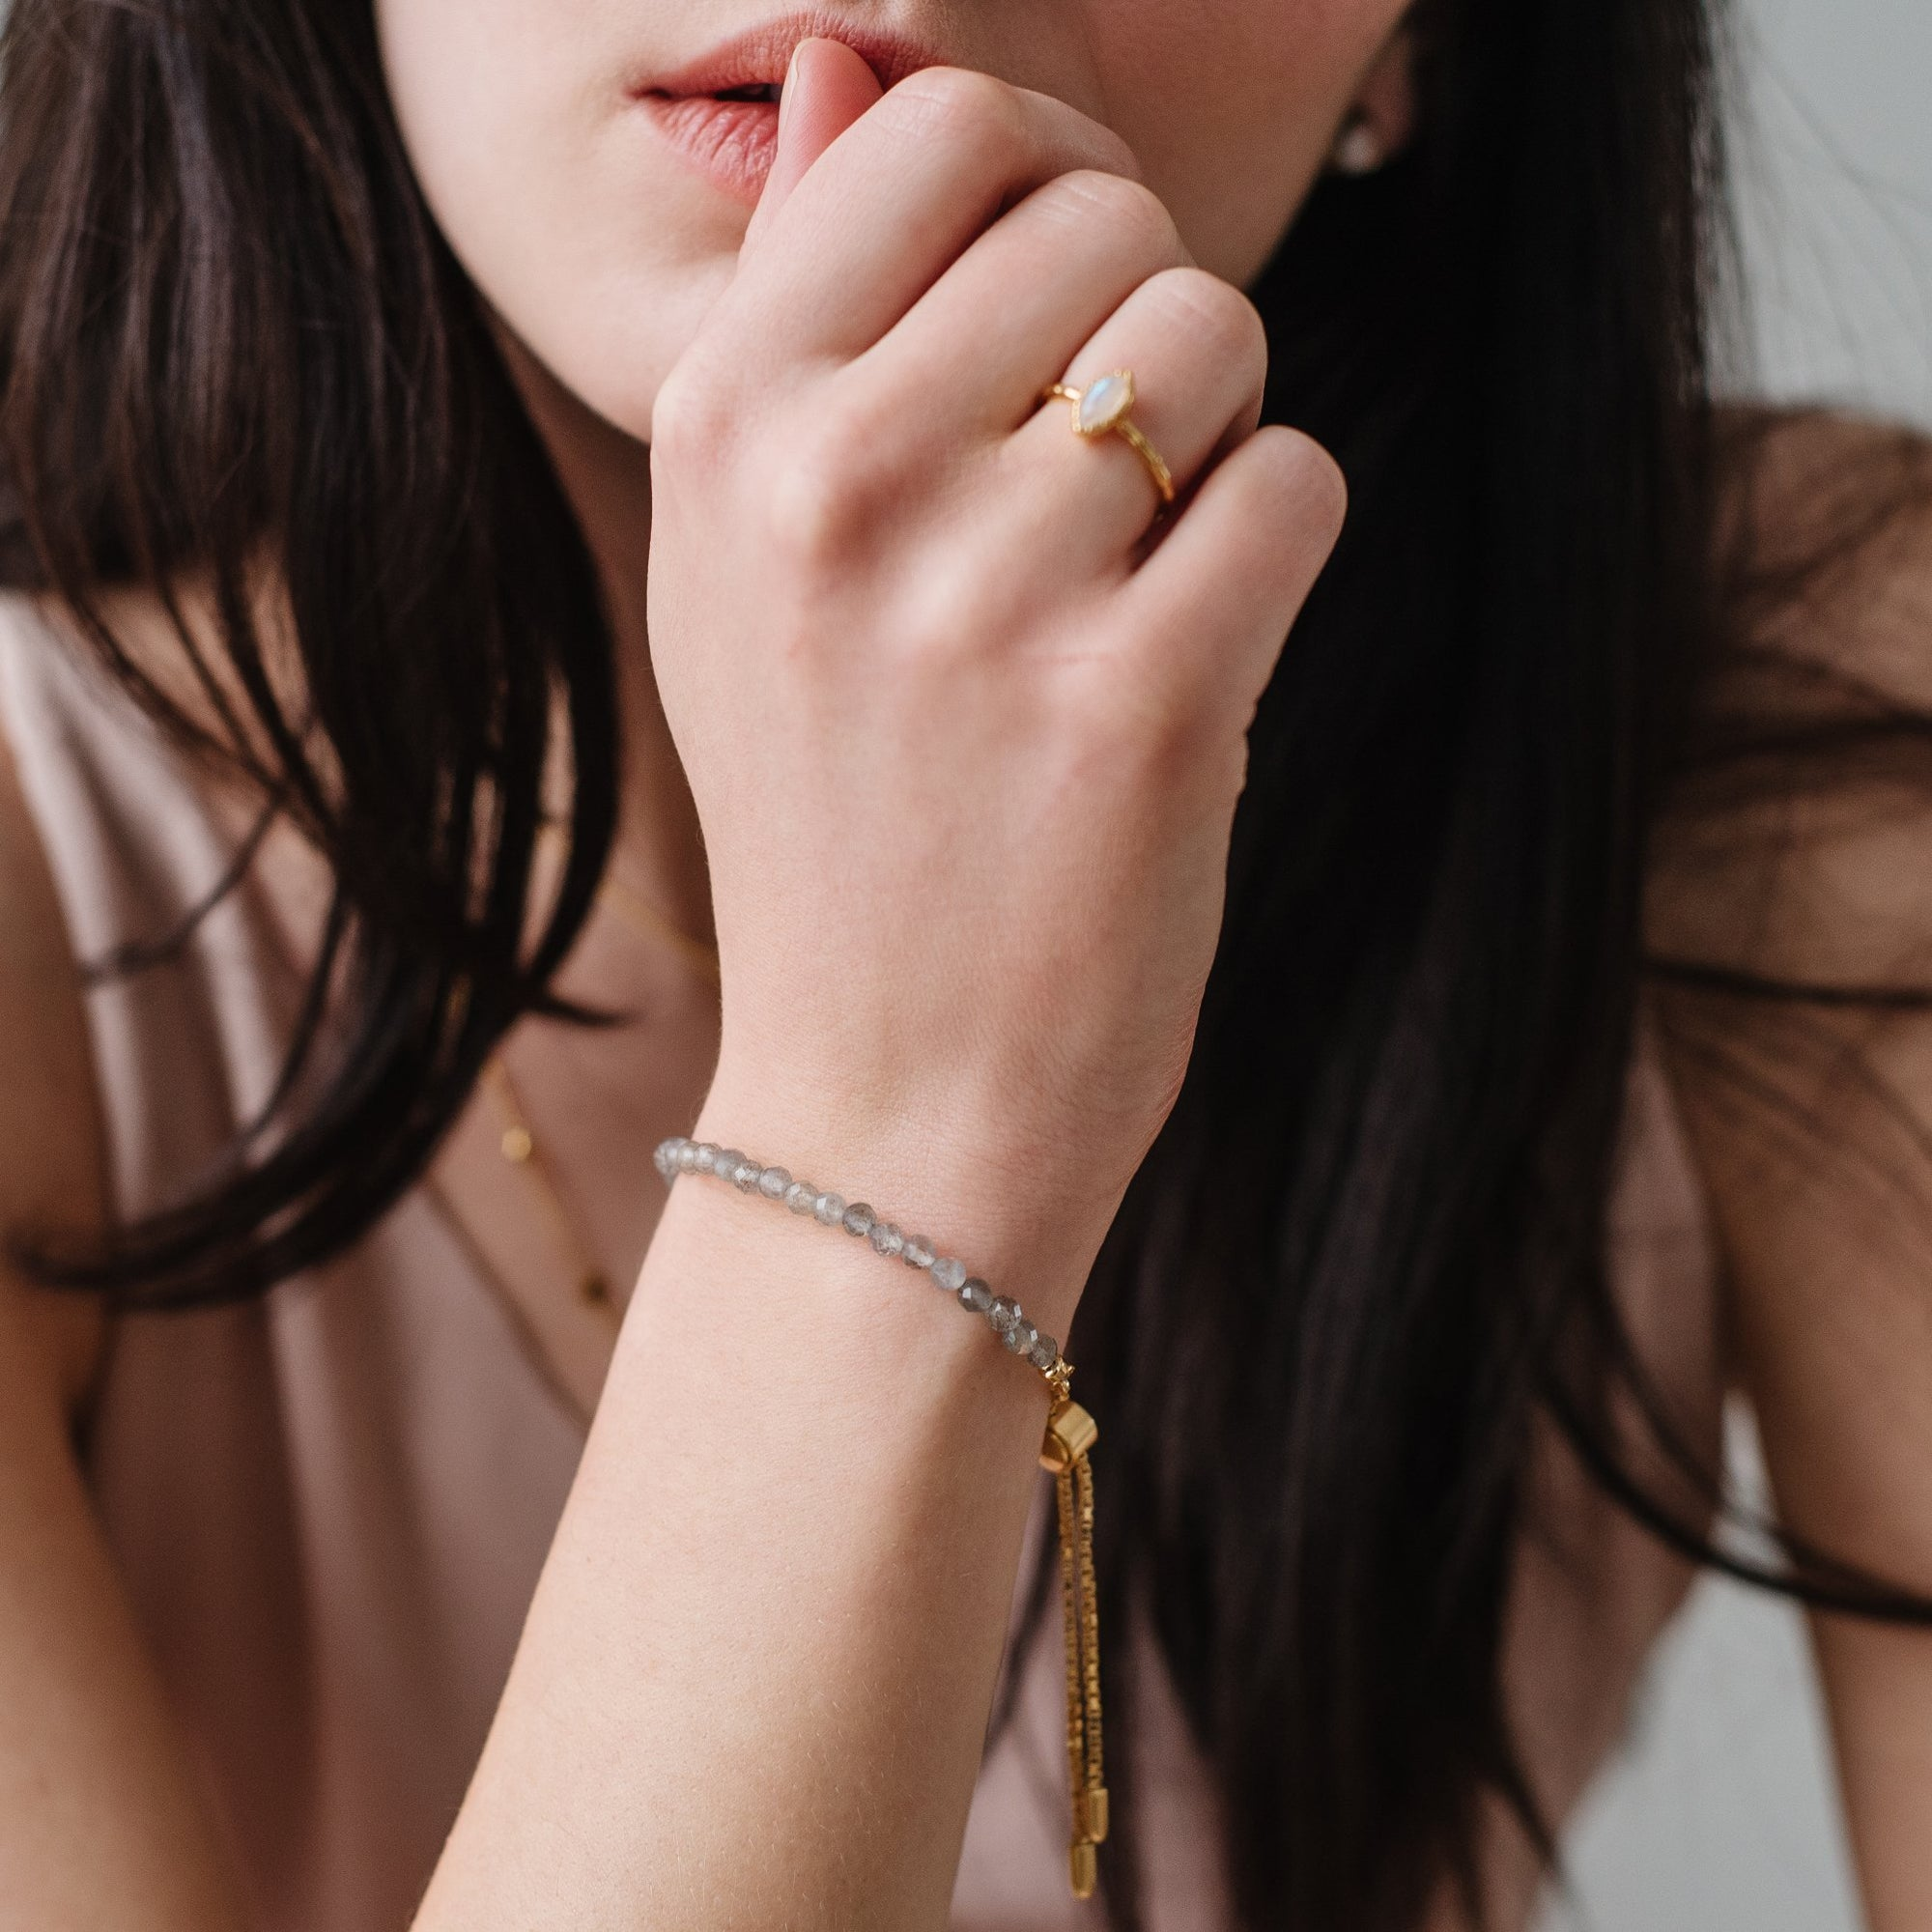 ICONIC ADJUSTABLE BRACELET - LABRADORITE & GOLD - SO PRETTY CARA COTTER